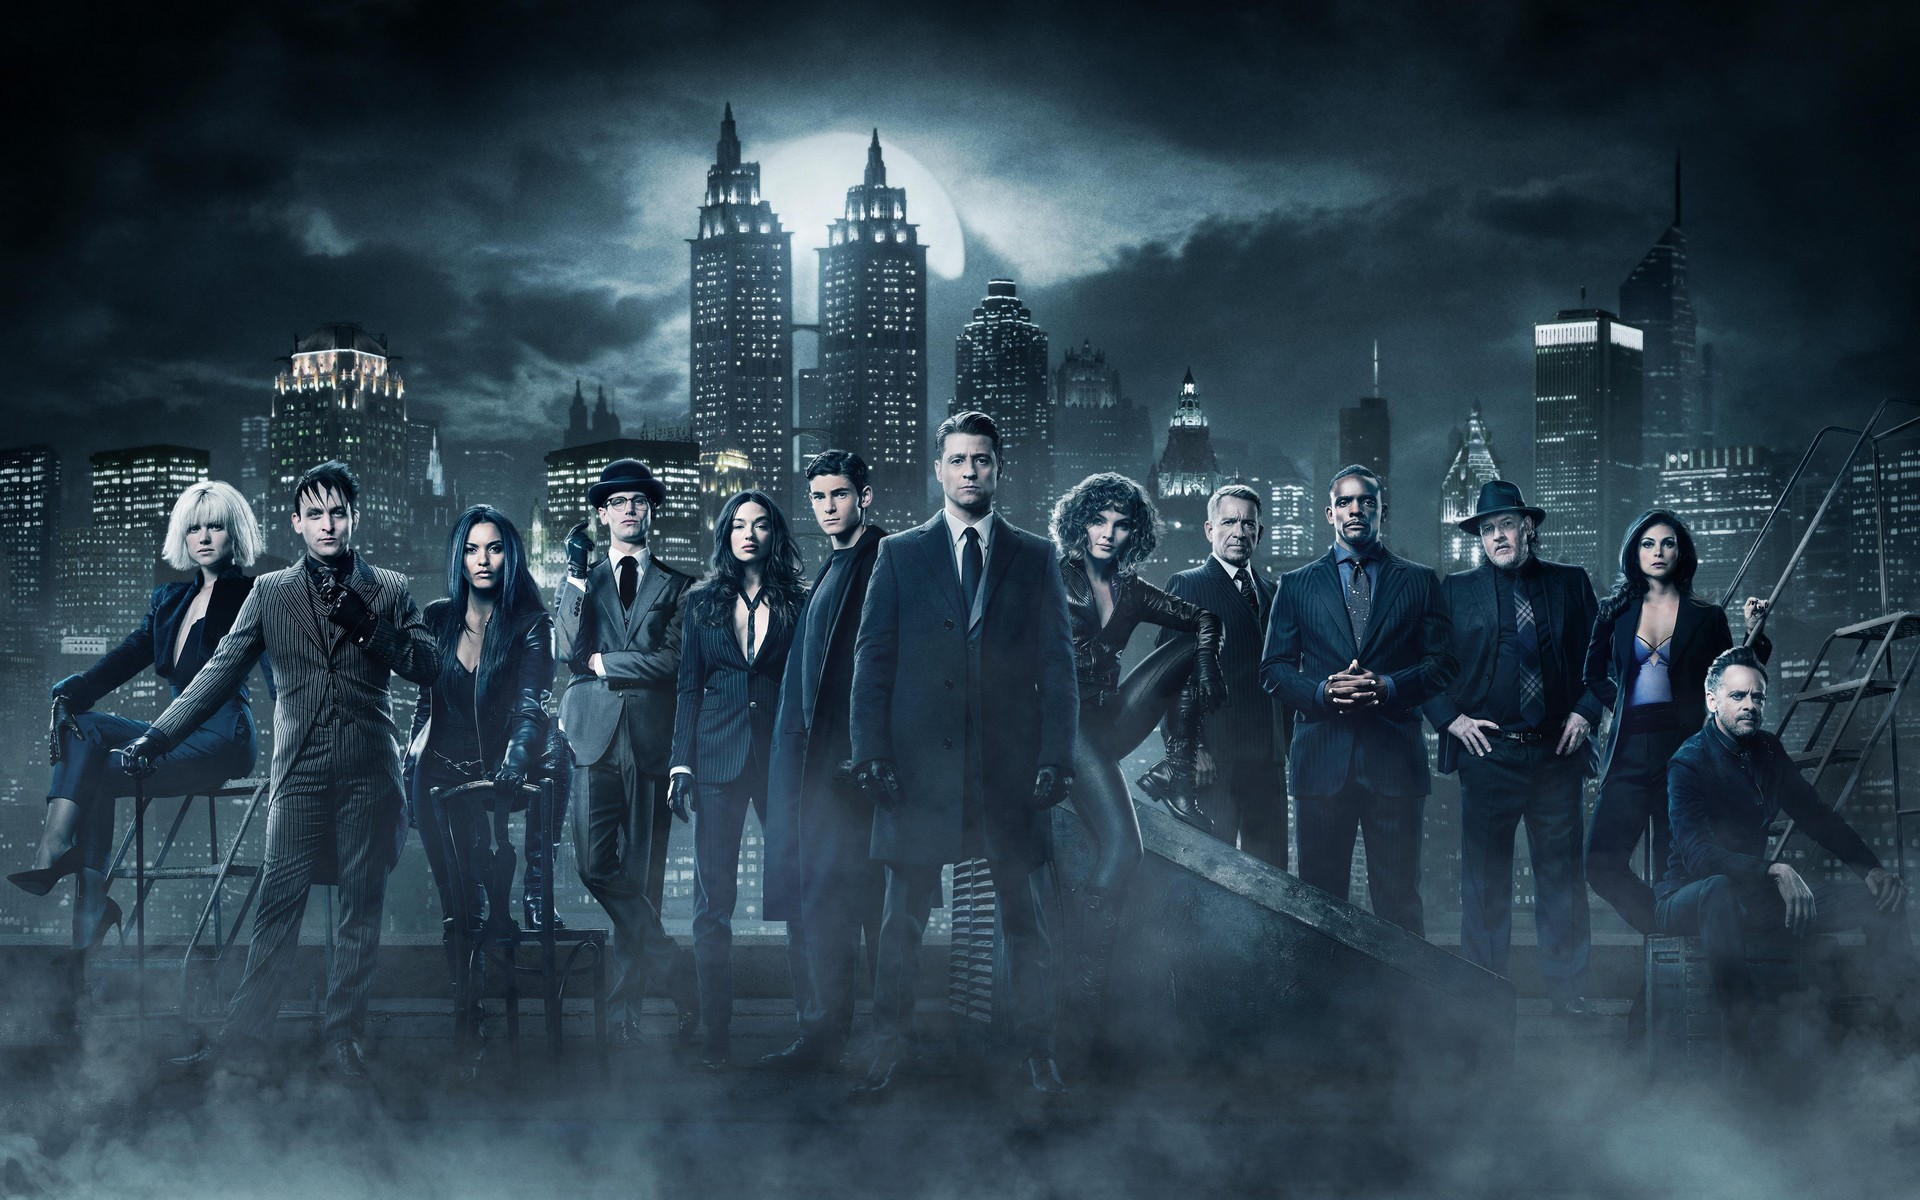 Download 32 gotham backgrounds 1920x1200